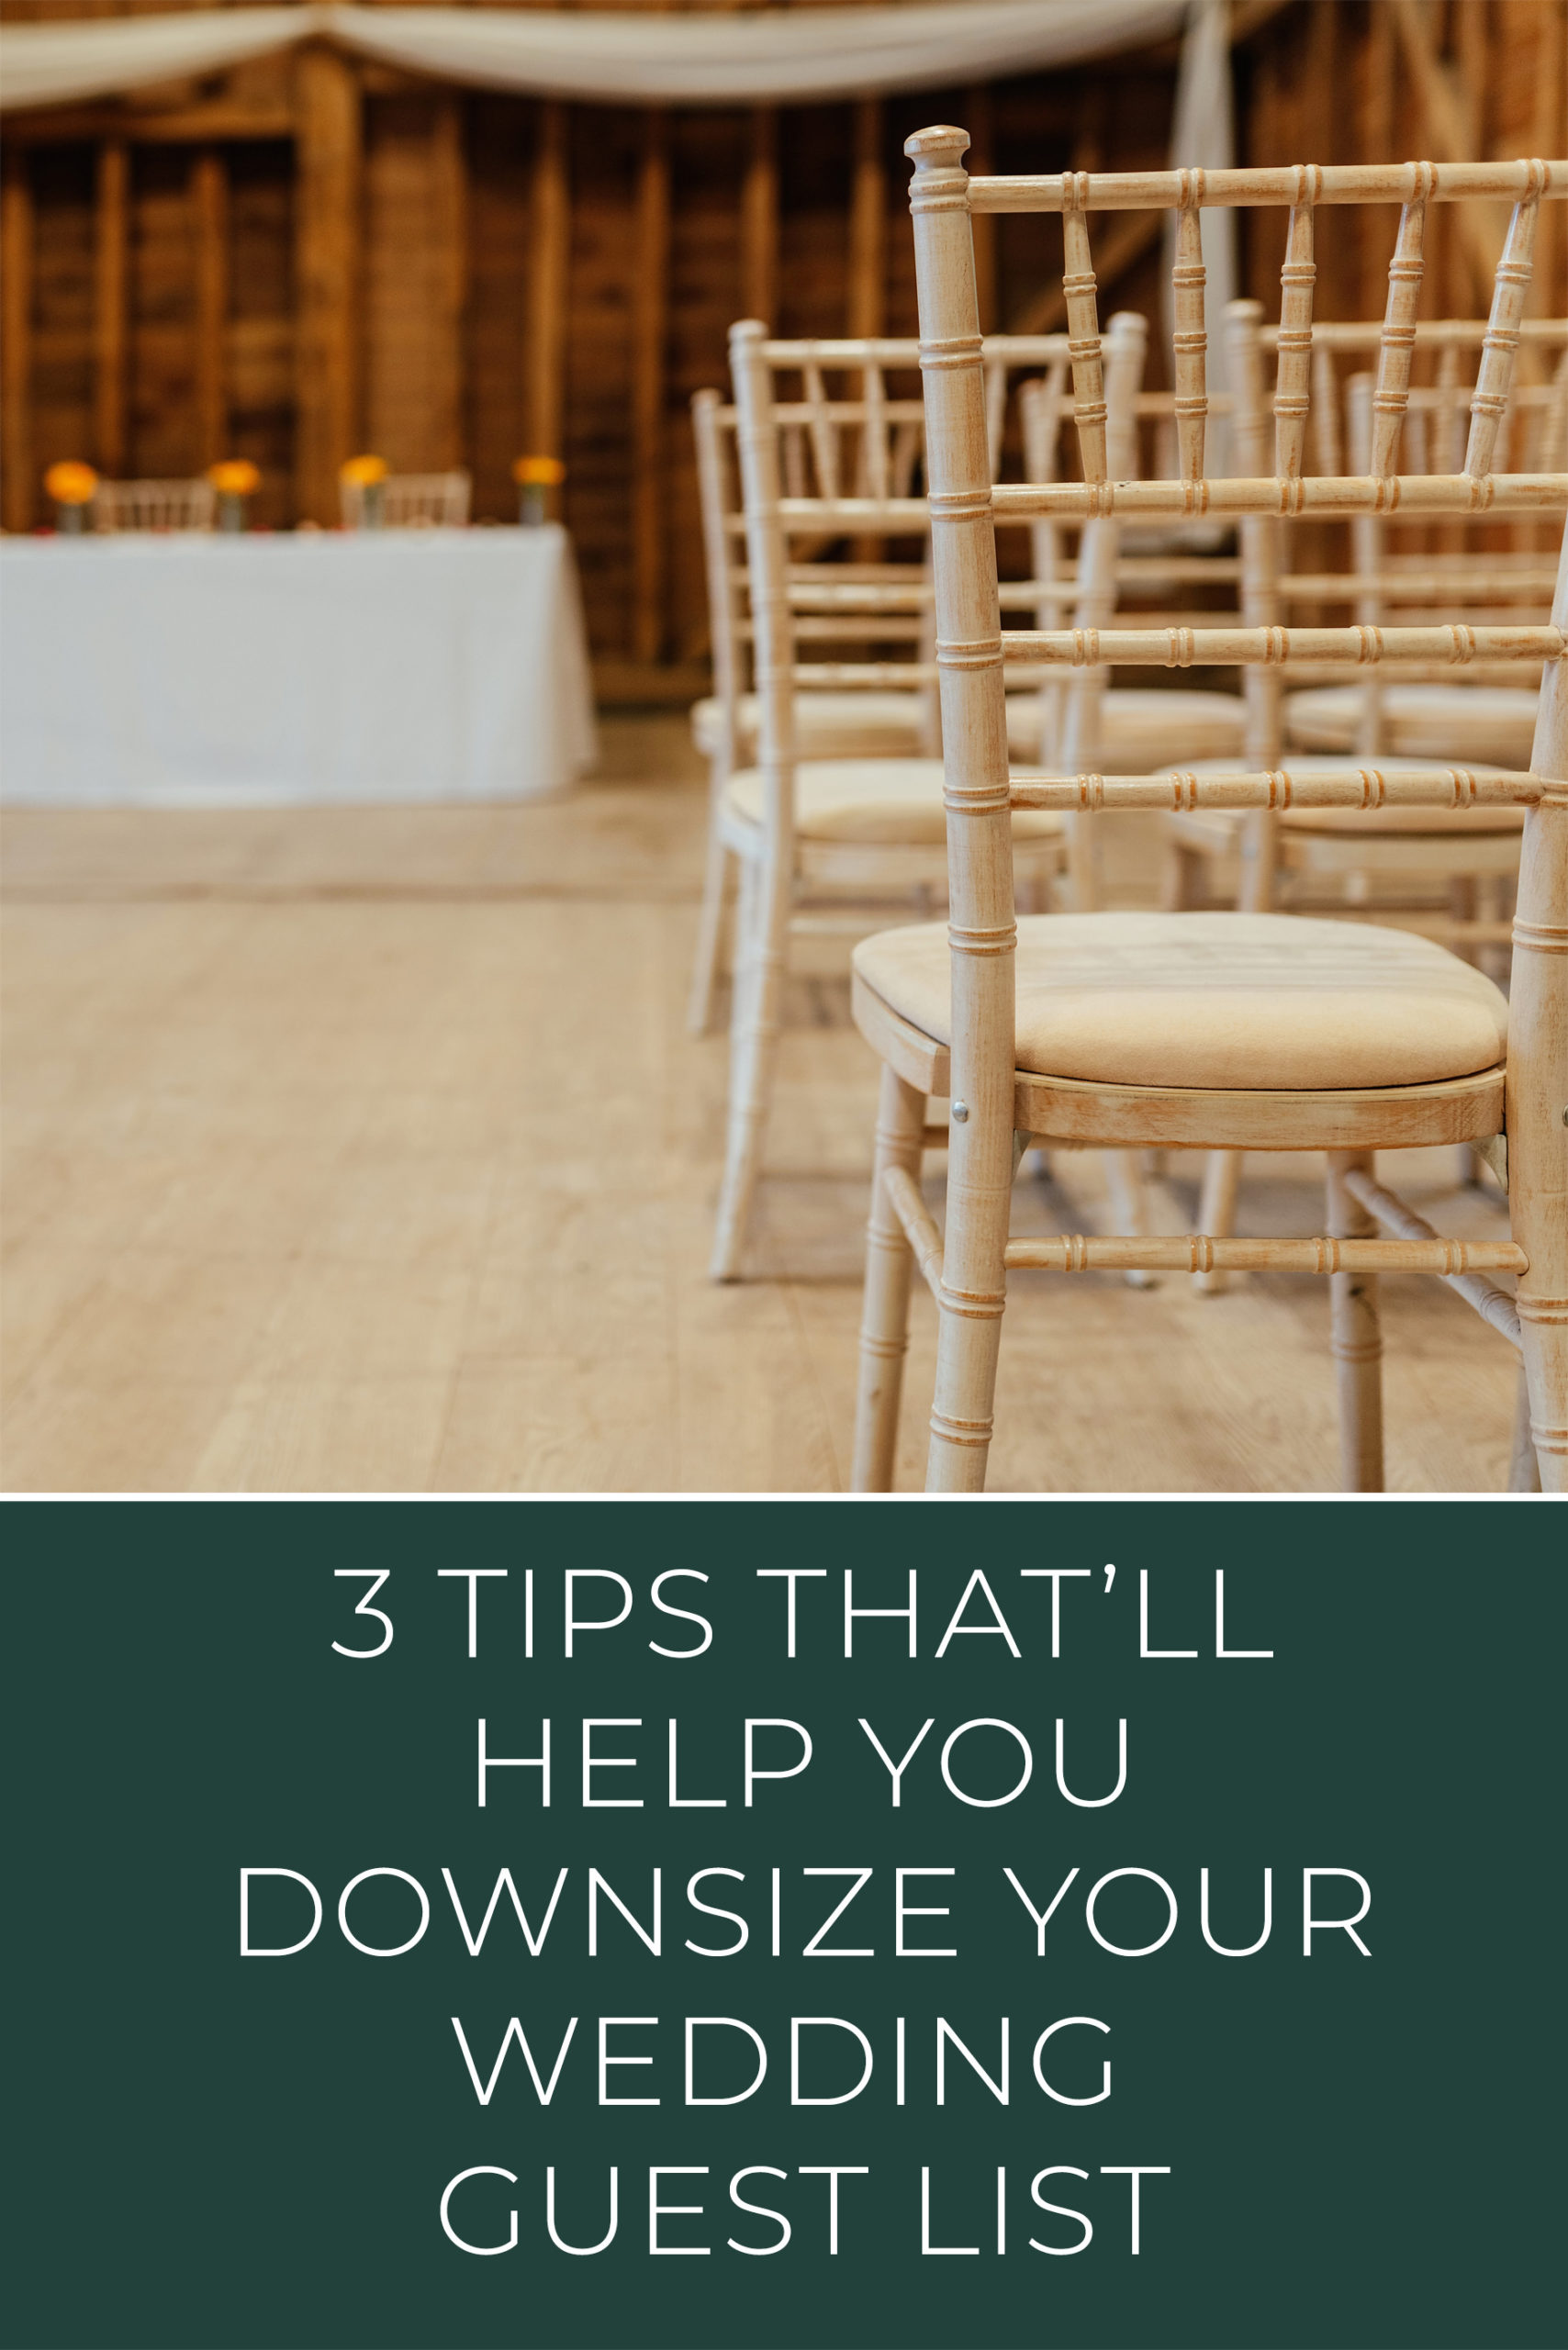 3 tips thatll help you downsize your wedding guest list